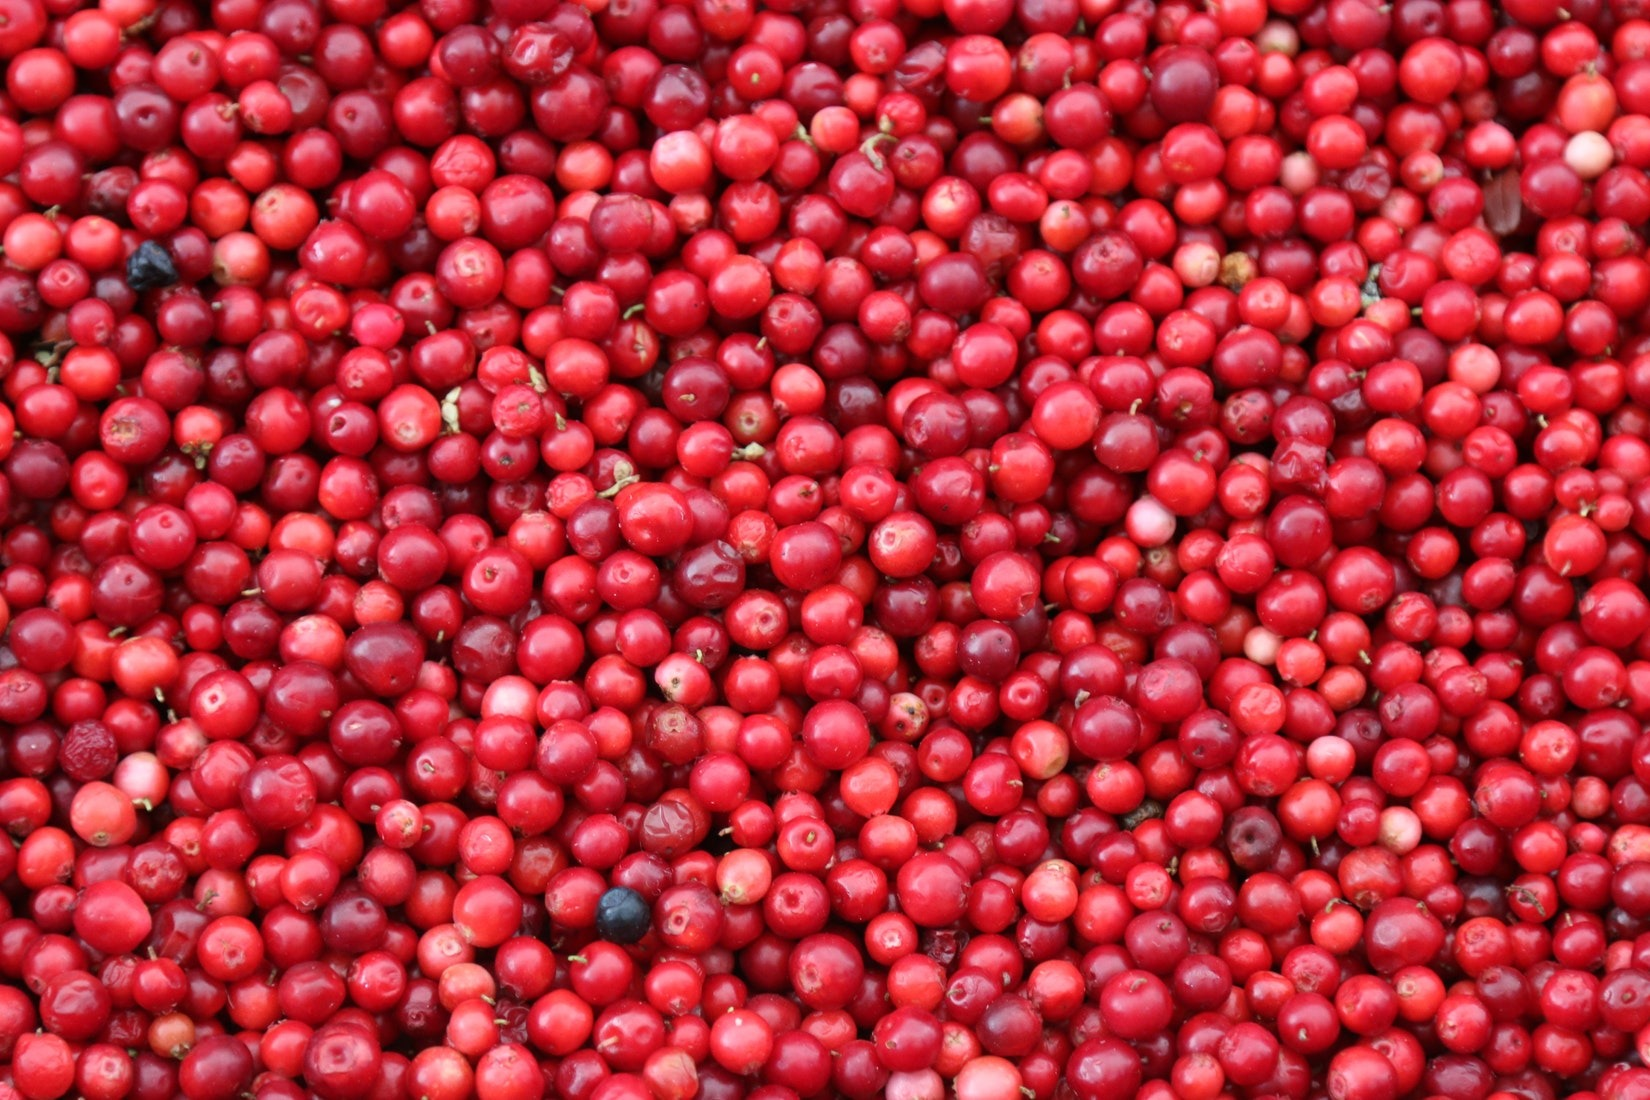 Cranberries may be an effective food against contracting UTI.